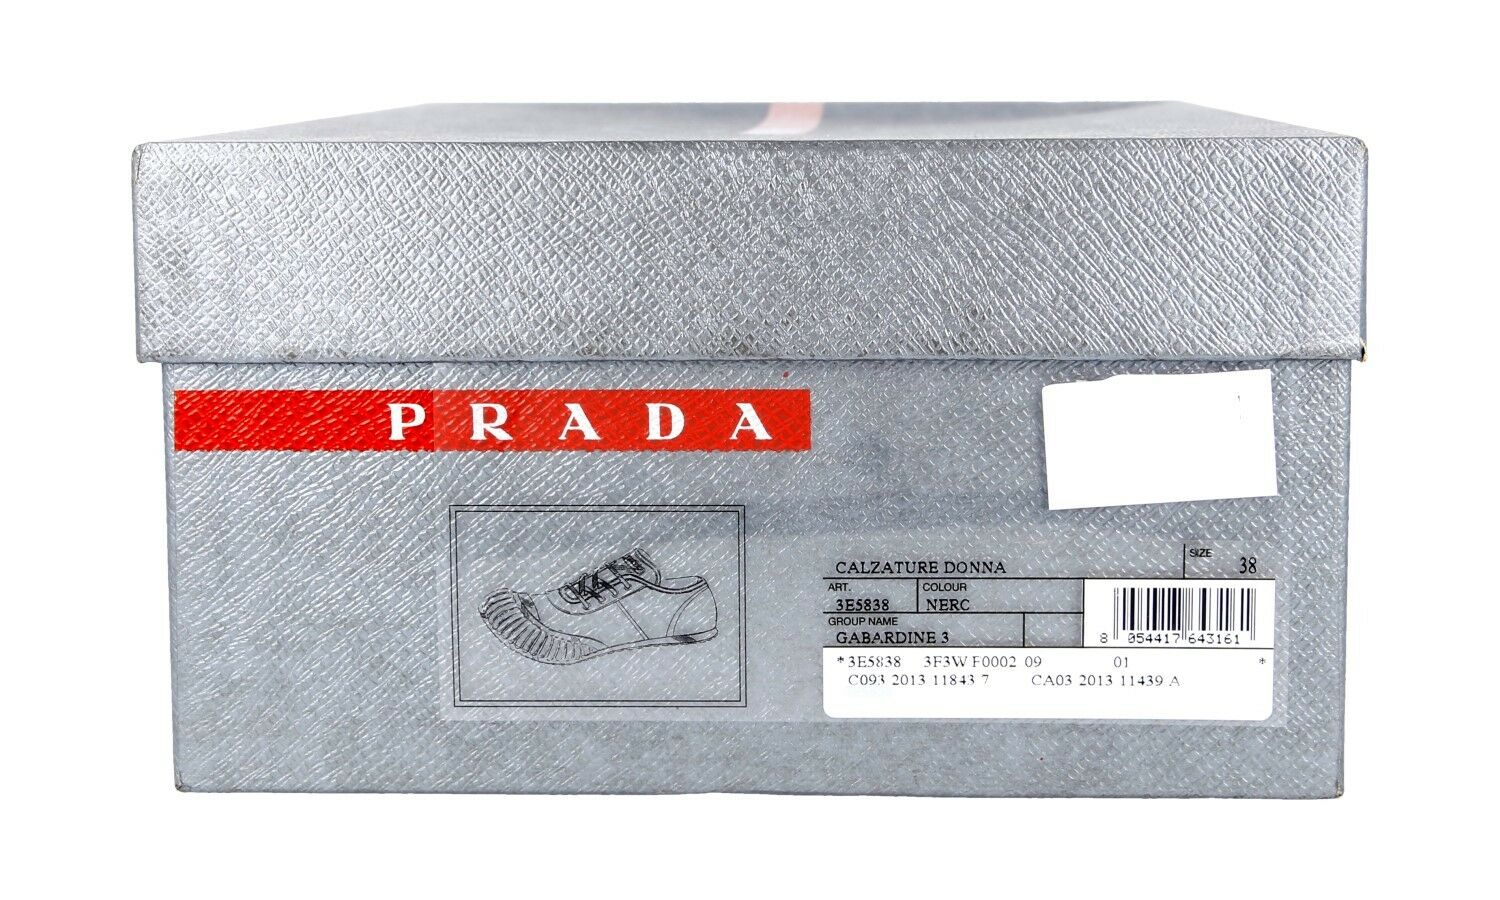 shoes PRADA LUXUEUX LUXUEUX LUXUEUX 3E5838 black NOUVEAUX 40,5 41 UK 7.5 cb14f9